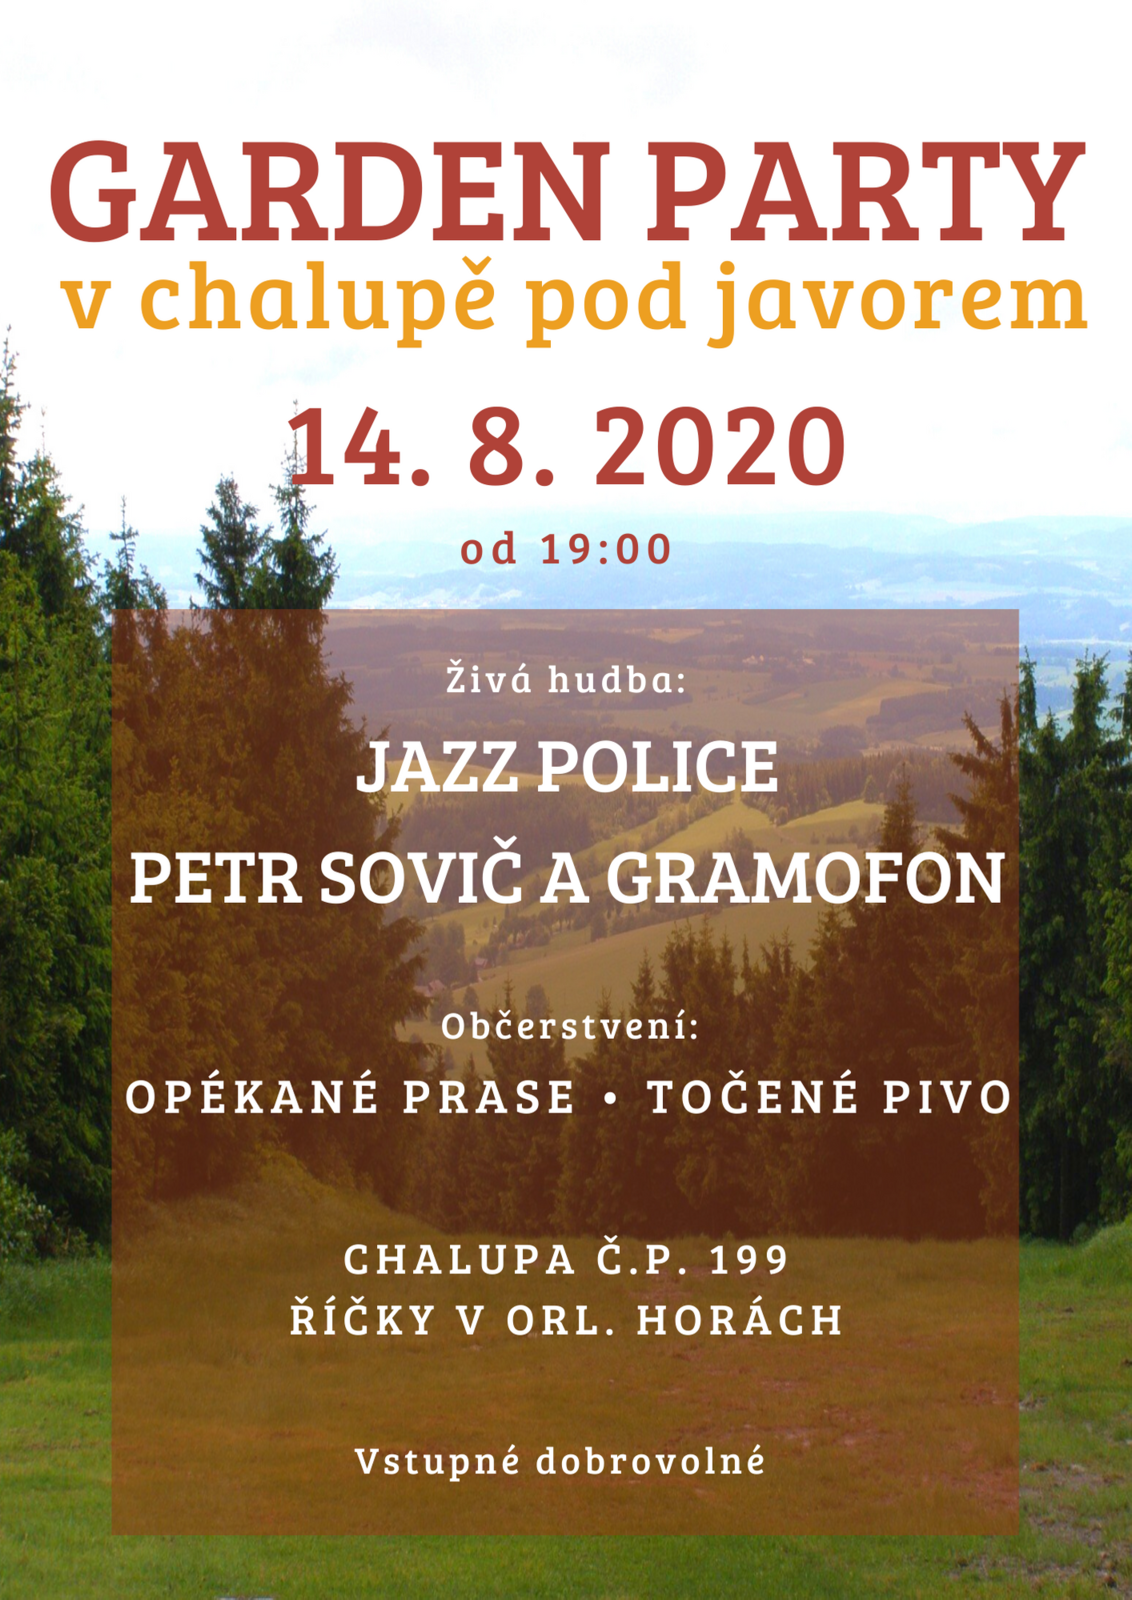 2020 Garden party Říčky A3 v2.png